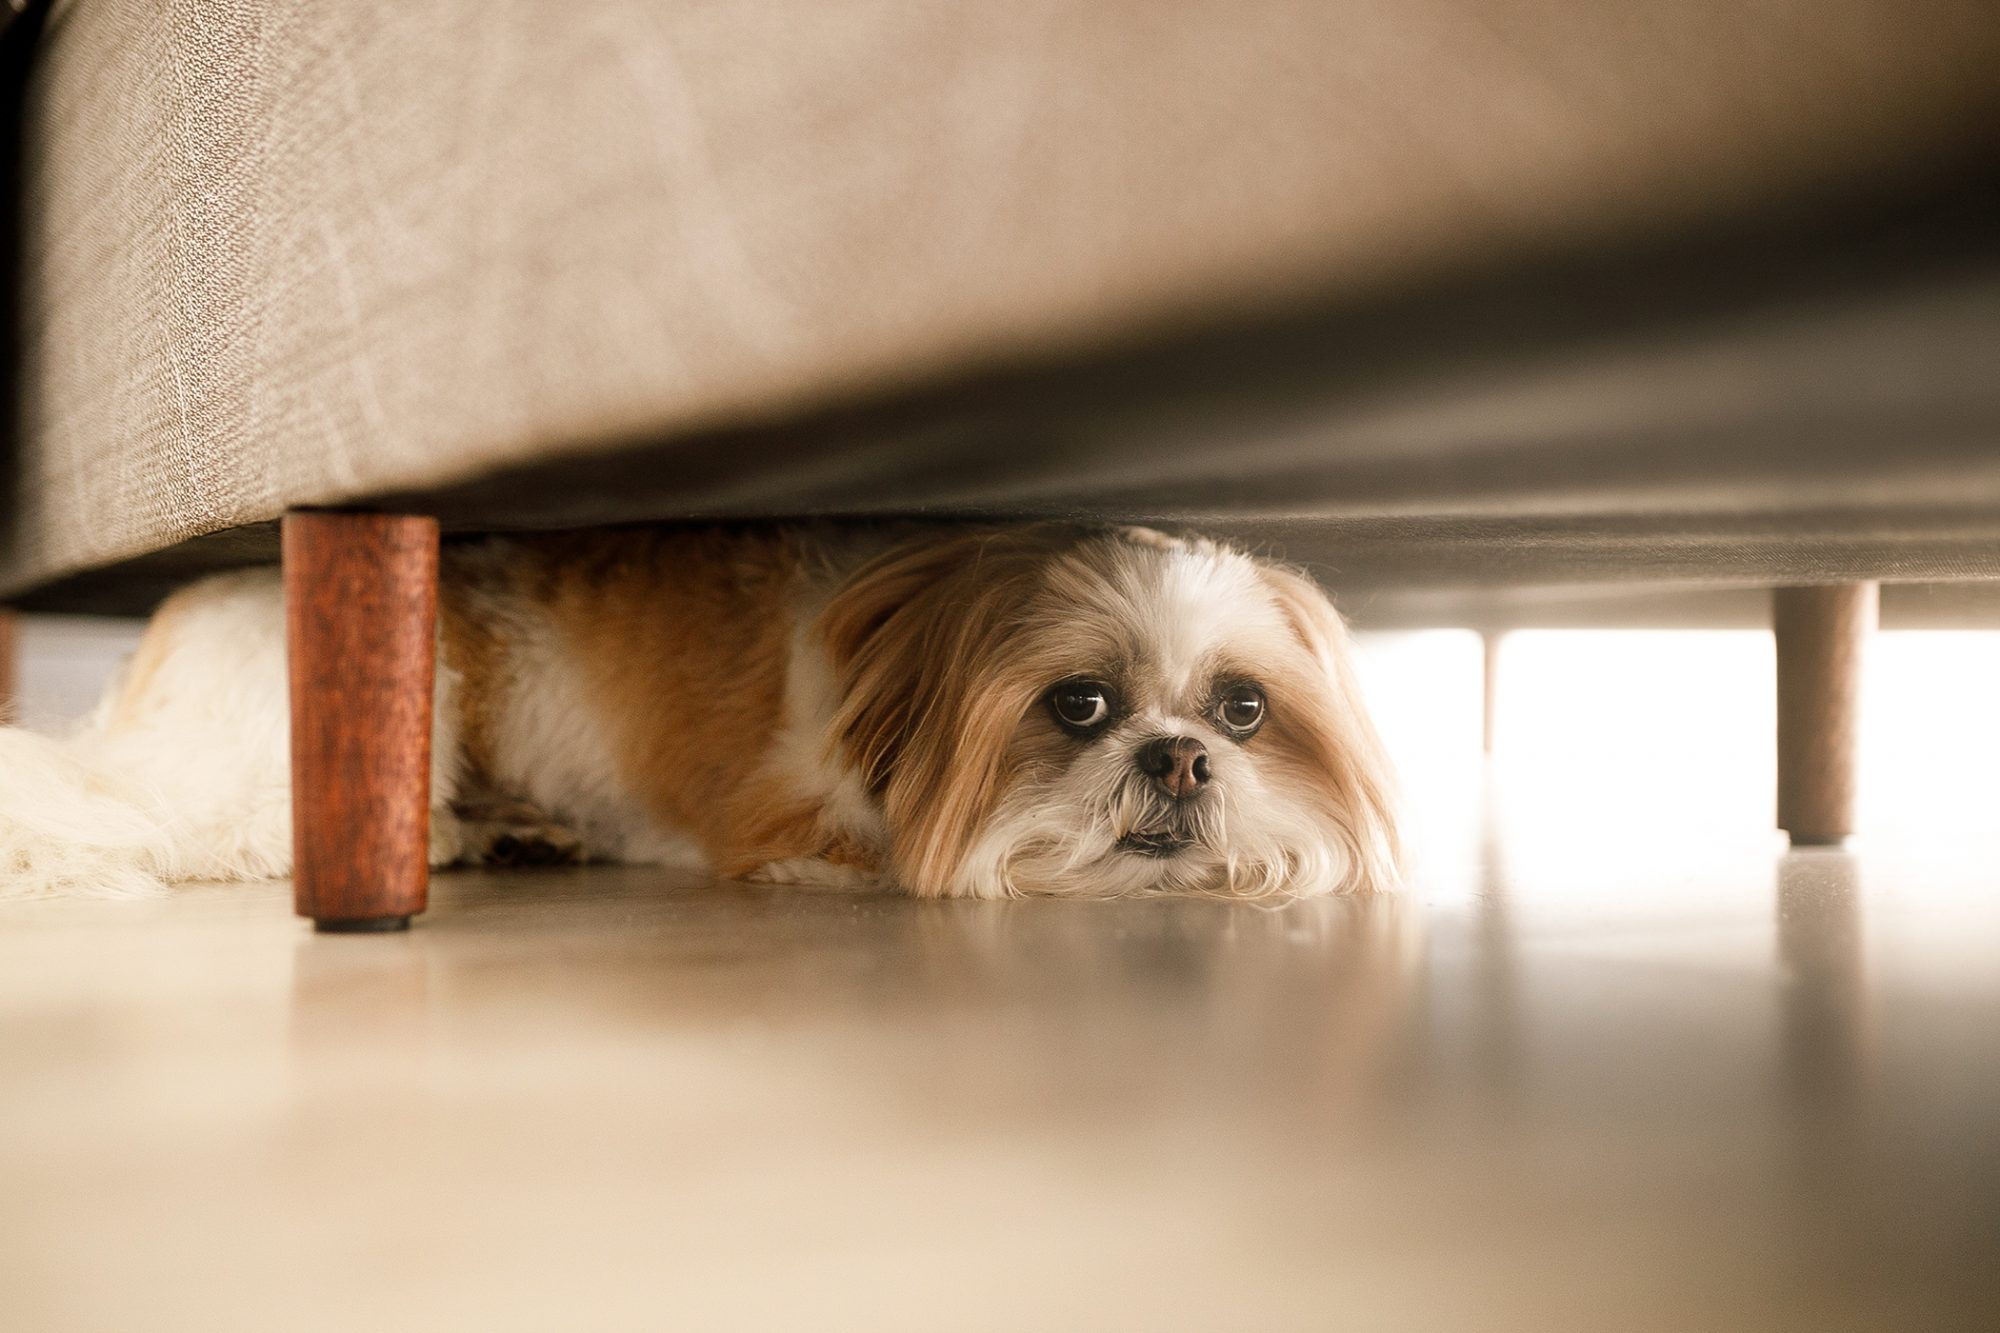 scared dog hiding under couch